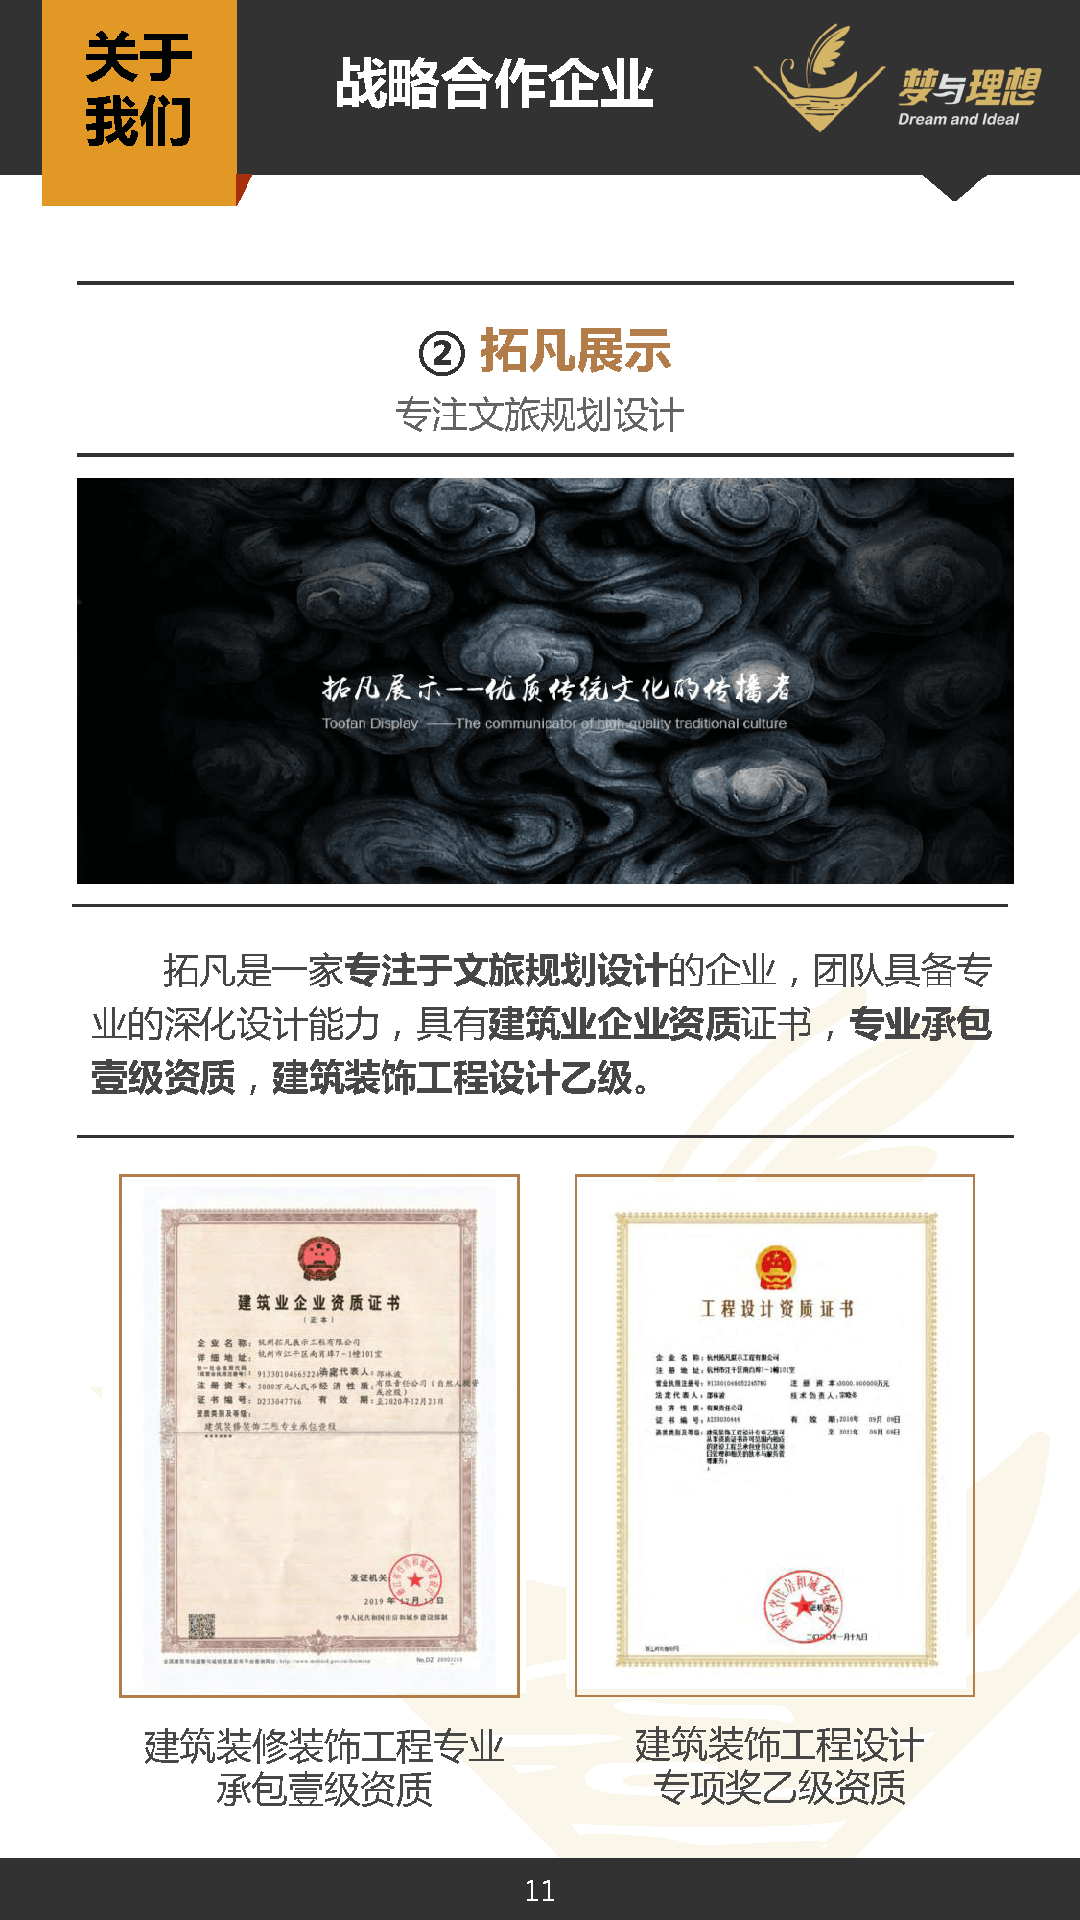 旅行品牌日用平面 - Powerpoint, Cinema 4D, Adobe Photoshop, Adobe Illustrator - graphic-design, portfolio